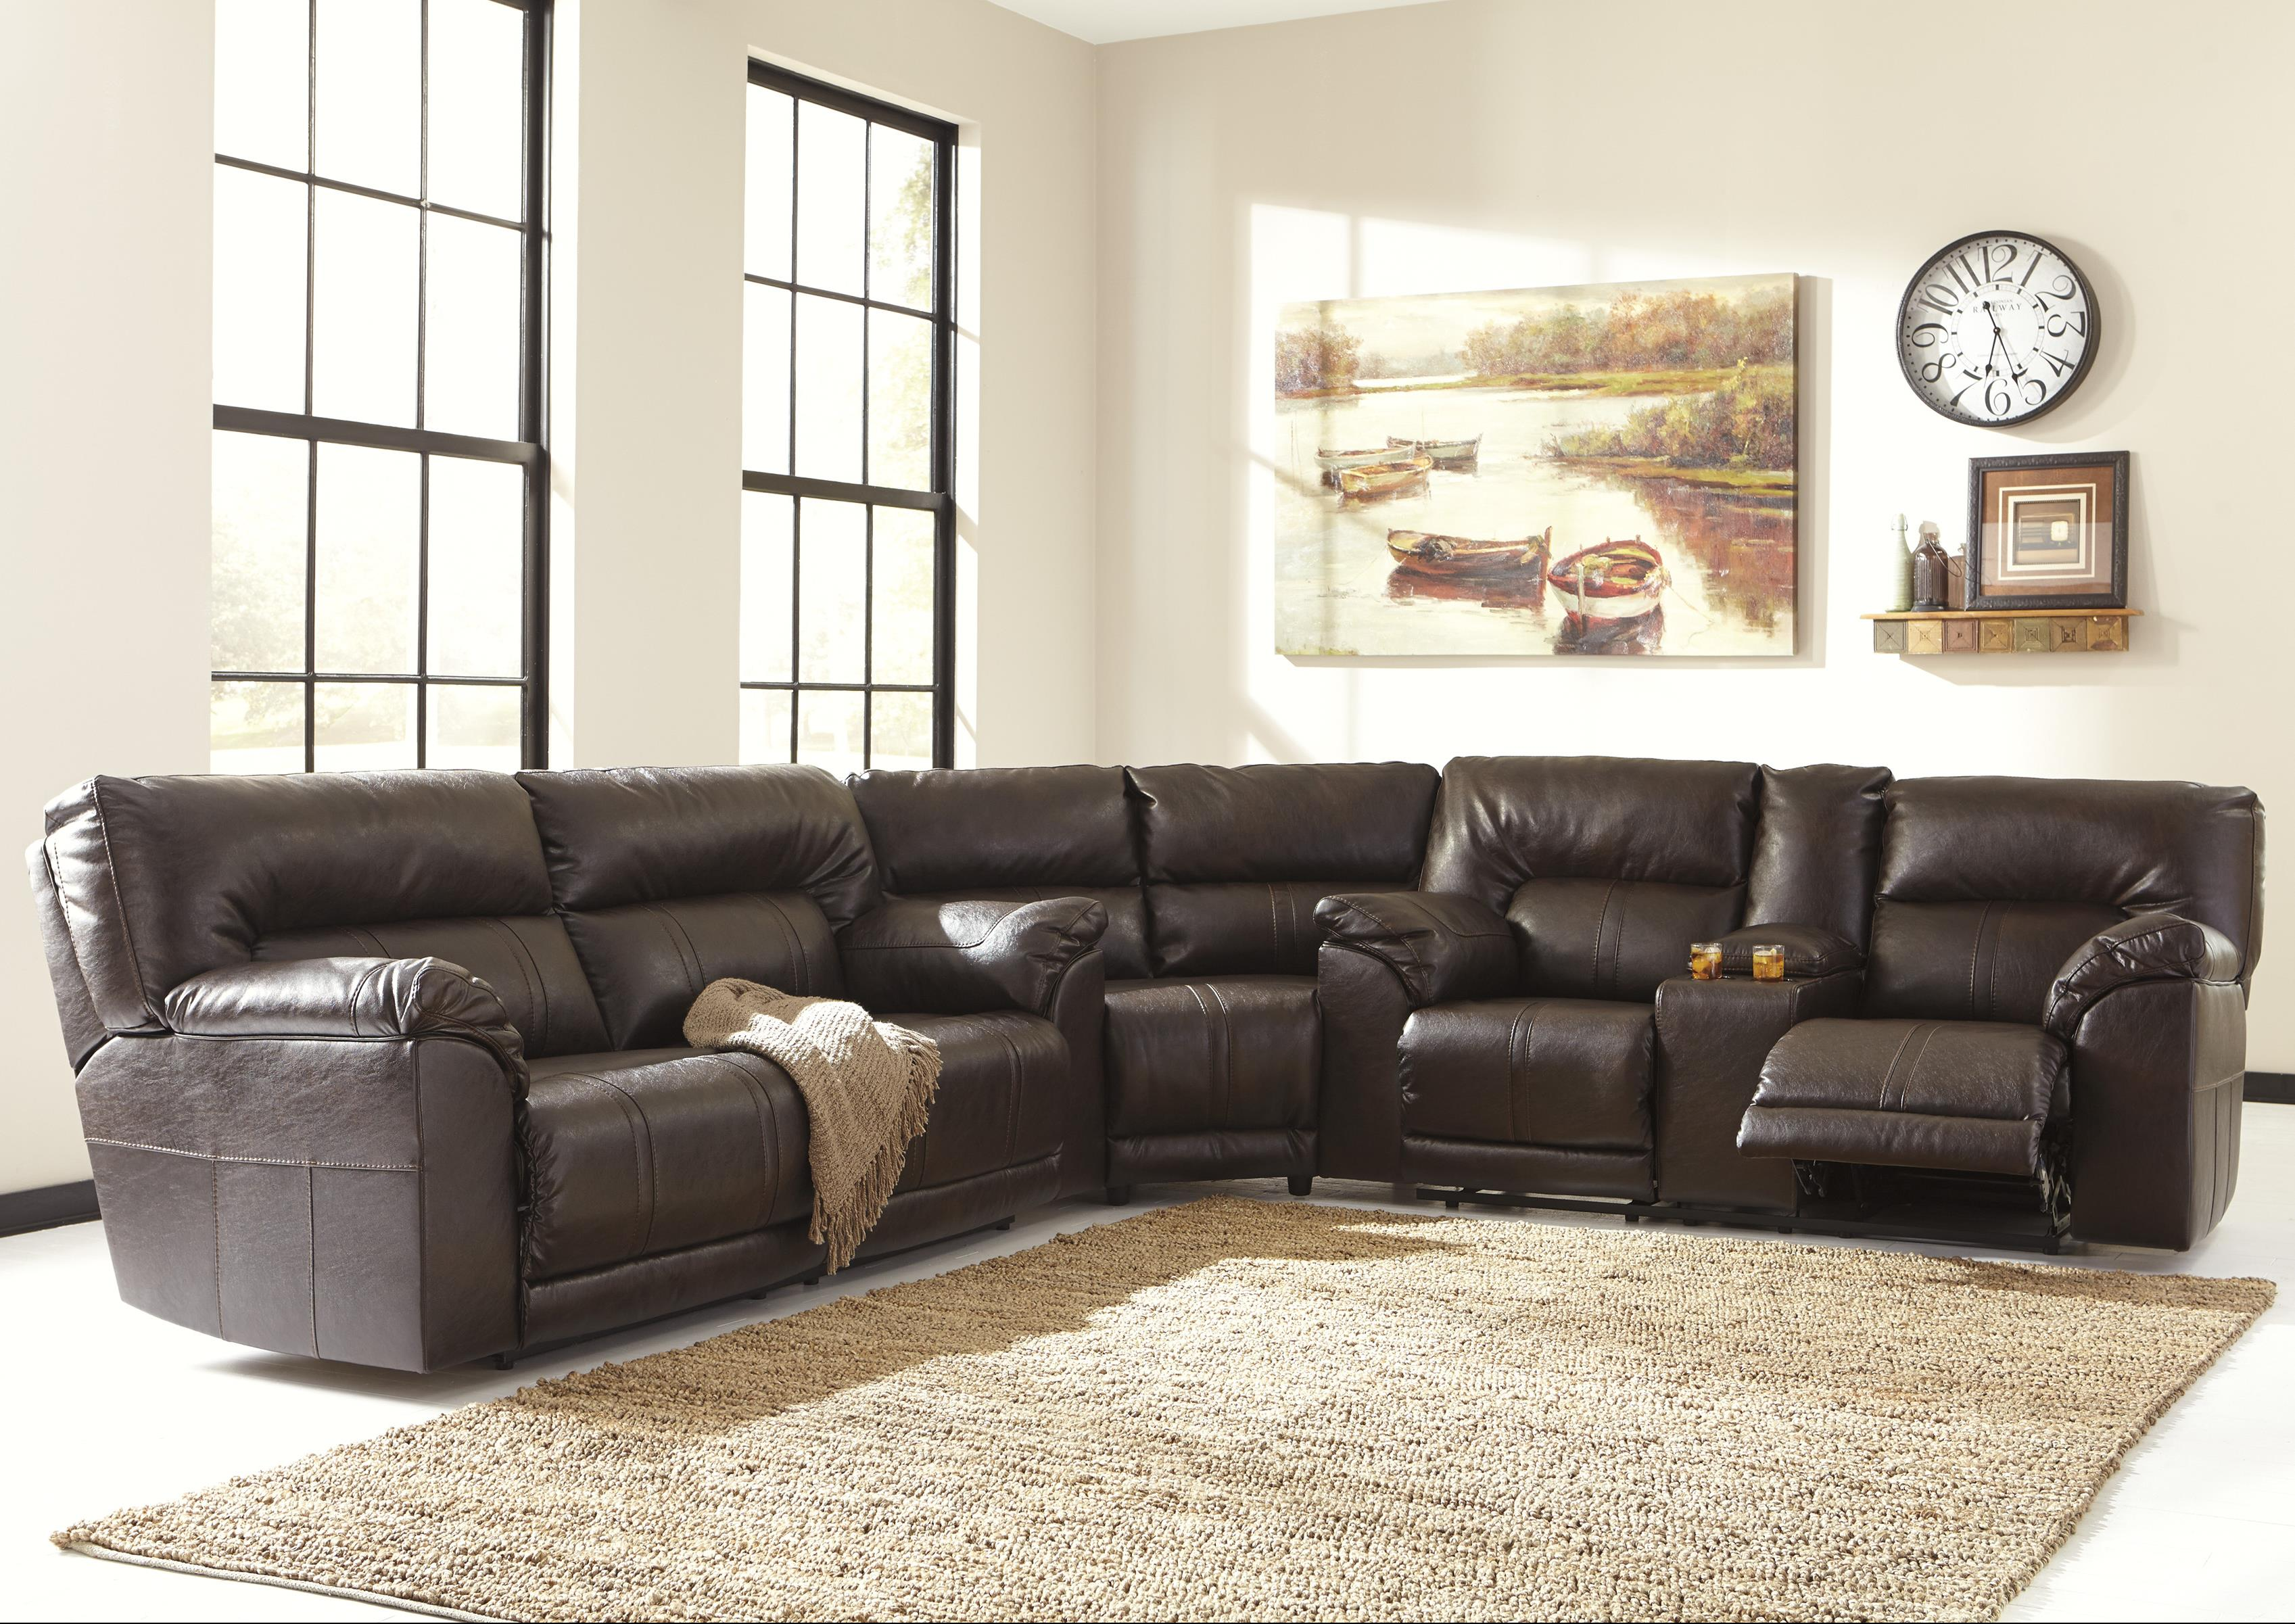 3-Piece Reclining Sectional : 3 piece reclining sectional sofa - islam-shia.org